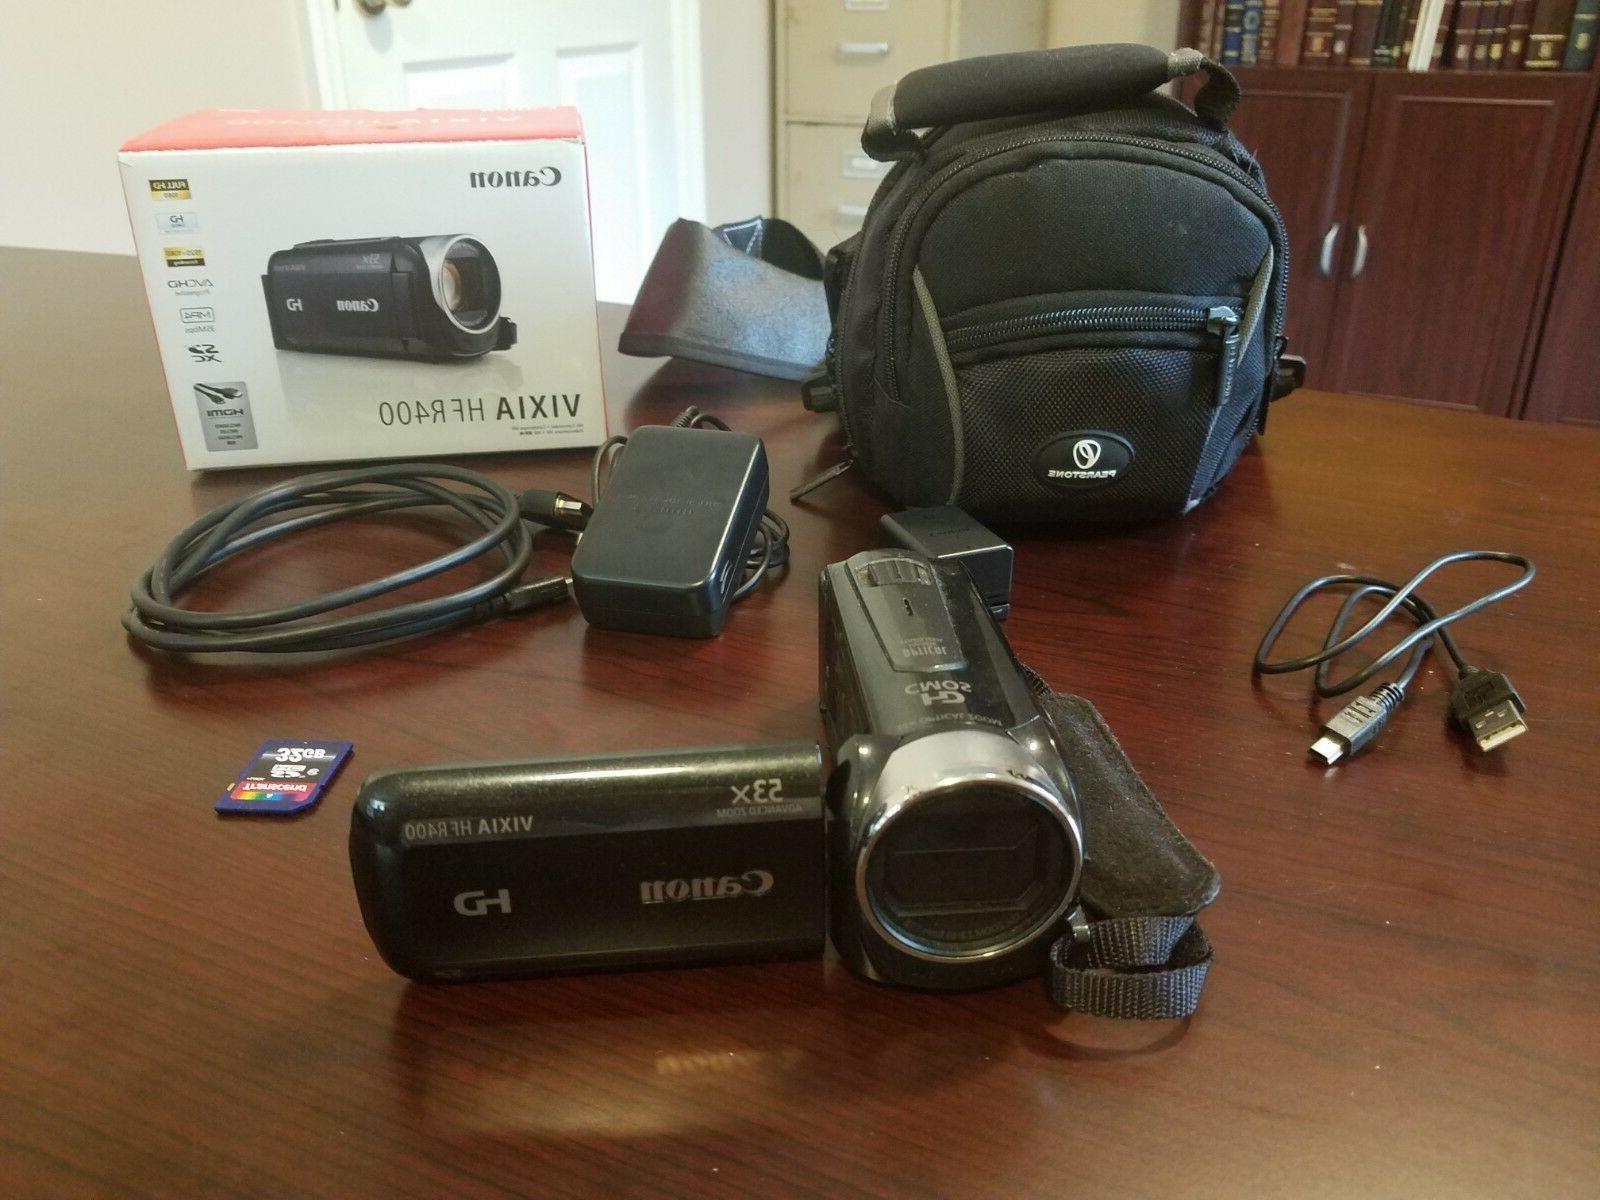 hf r400 camcorder 32gb sd card carrying